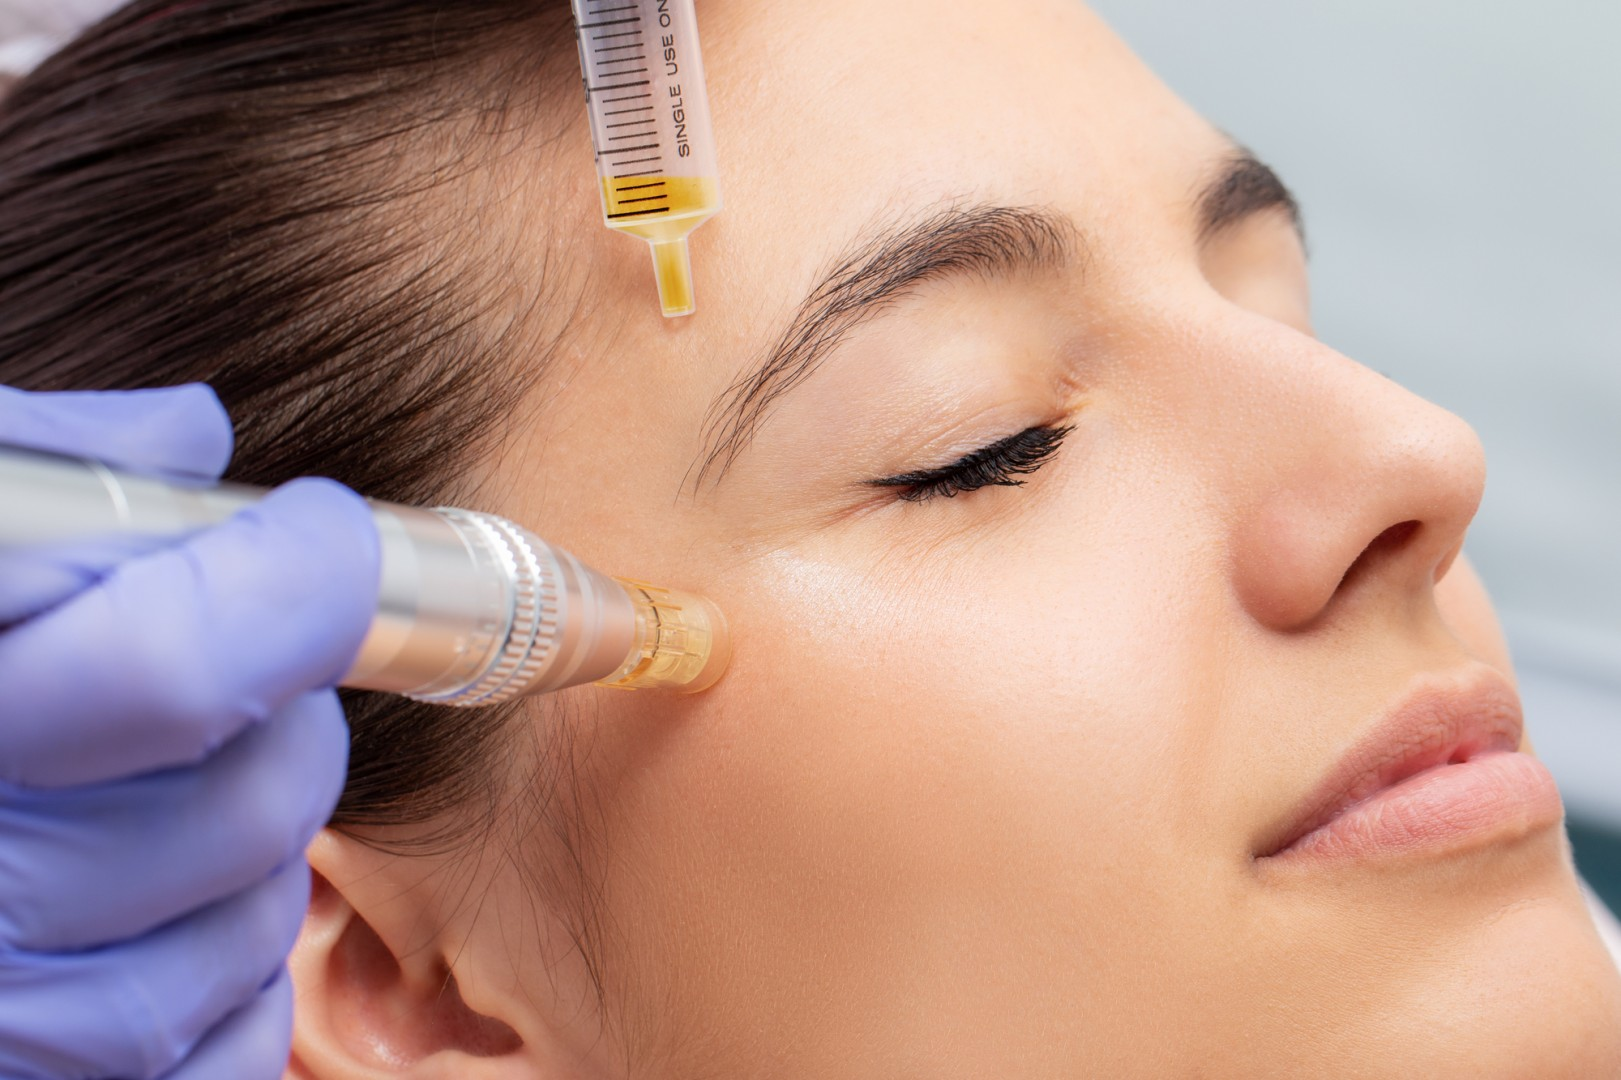 Microneedling - Evolve Acupuncture in Ferndale, MI